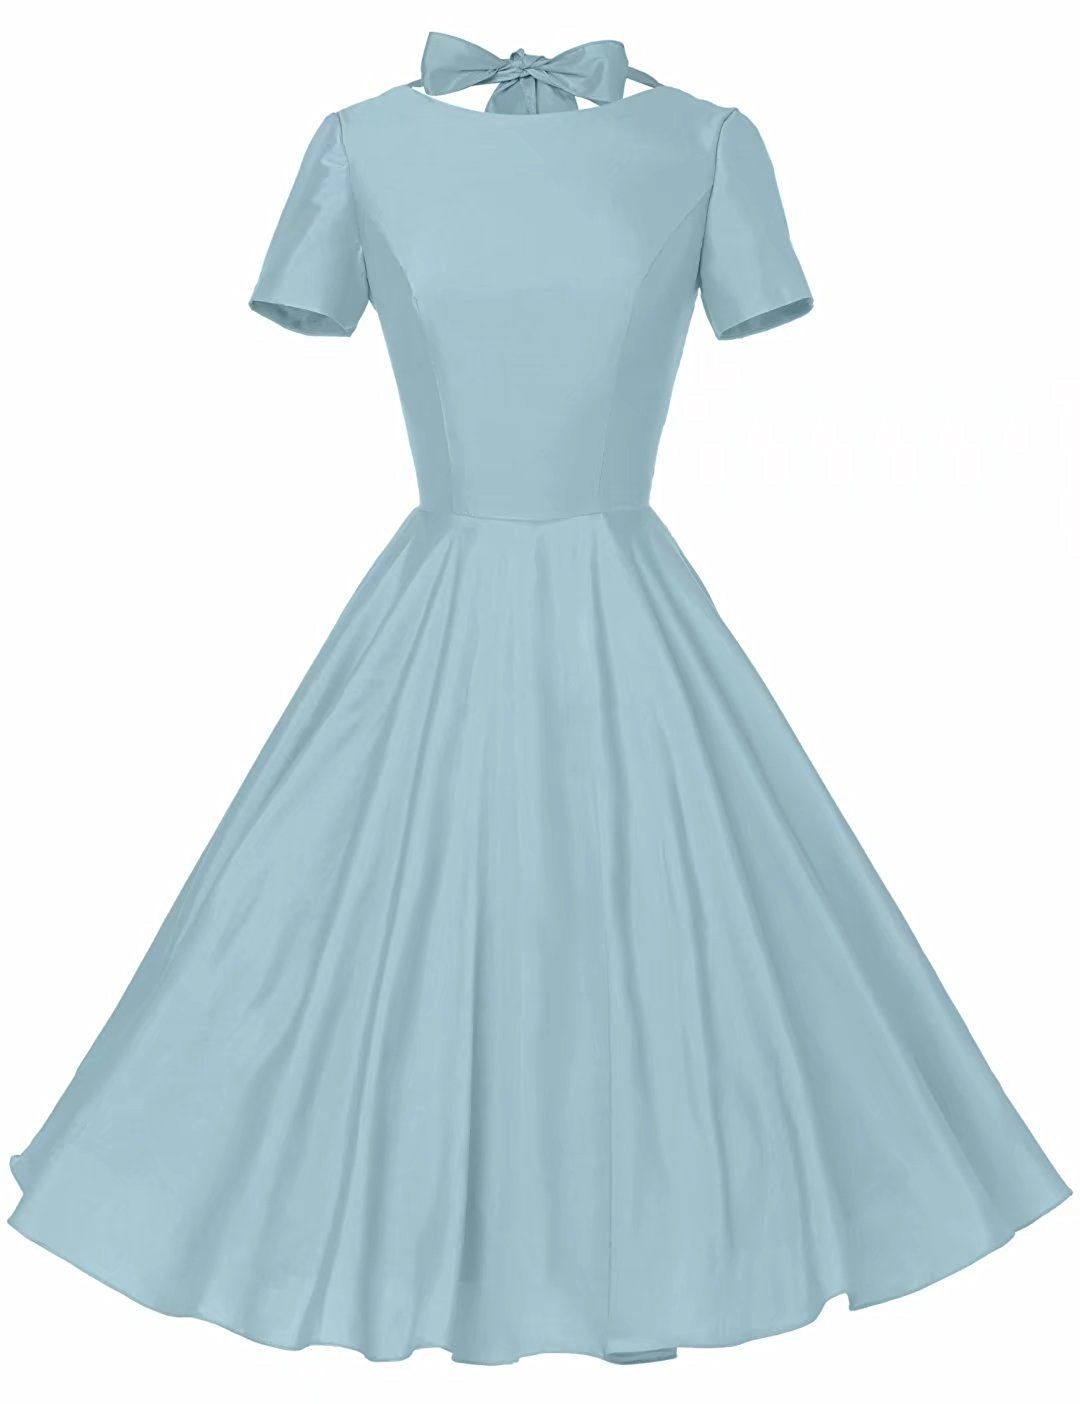 Amazon.com: GownTown Womens 1950s Vintage Retro Party Swing Dress ...